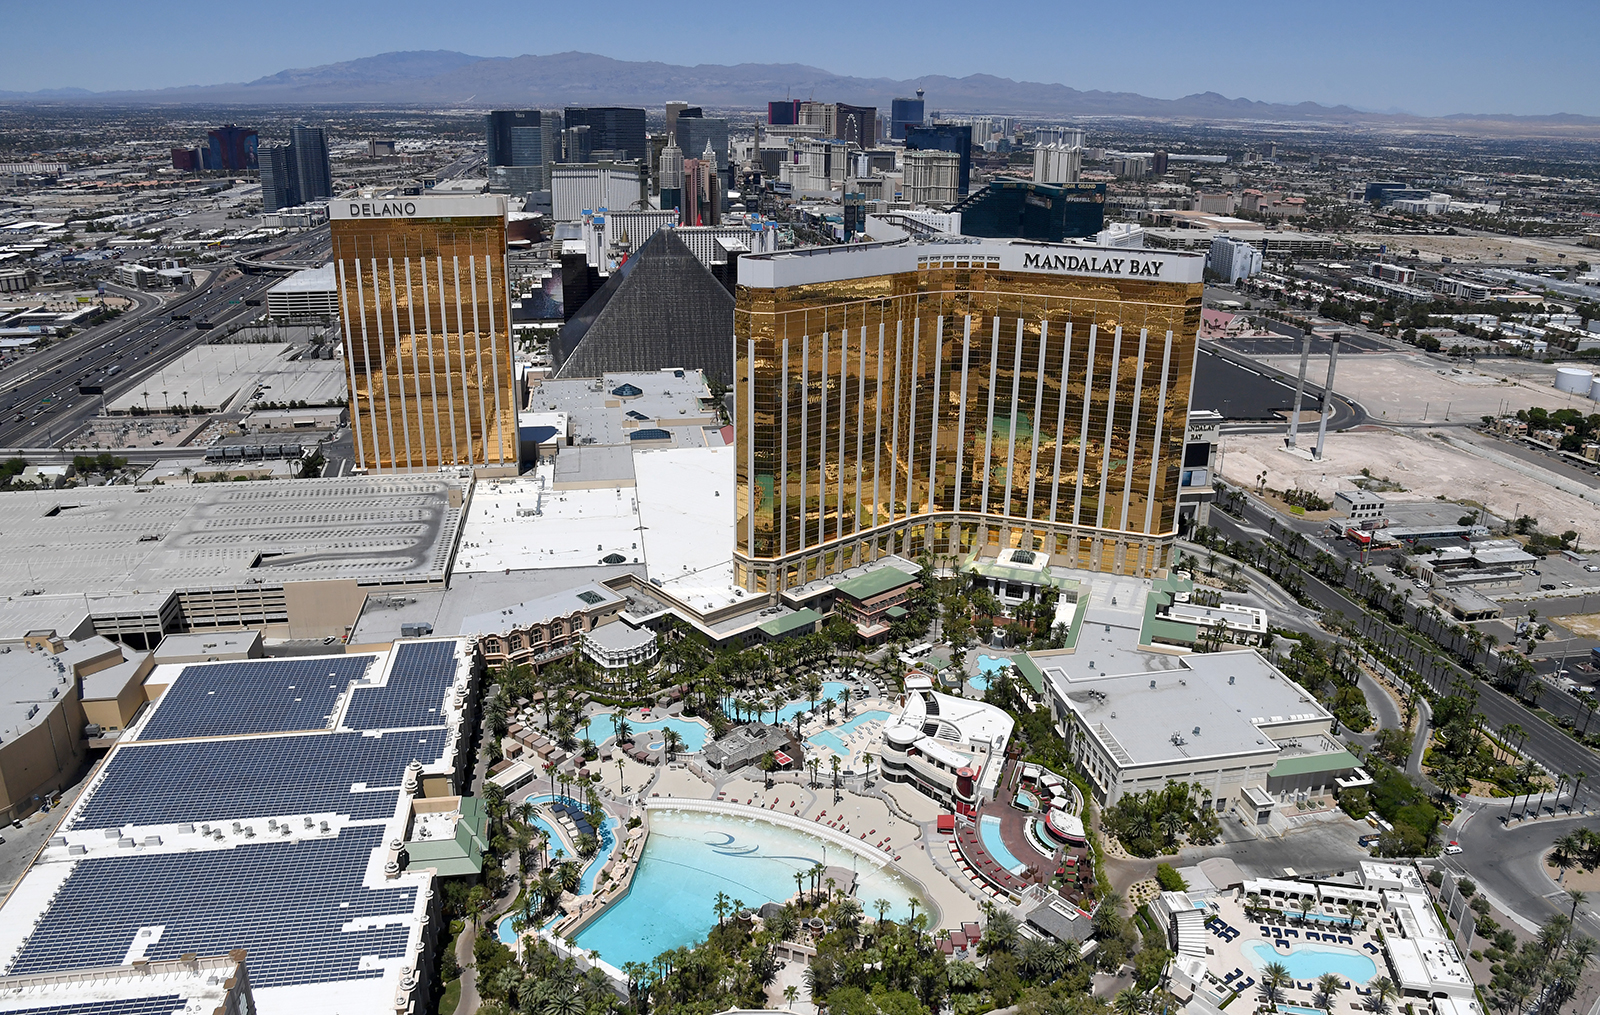 The Las Vegas Strip including Delano Las Vegas at Mandalay Bay Resort and Casino and Mandalay Bay Resort and Casino are seen closed on May 21 in Las Vegas.